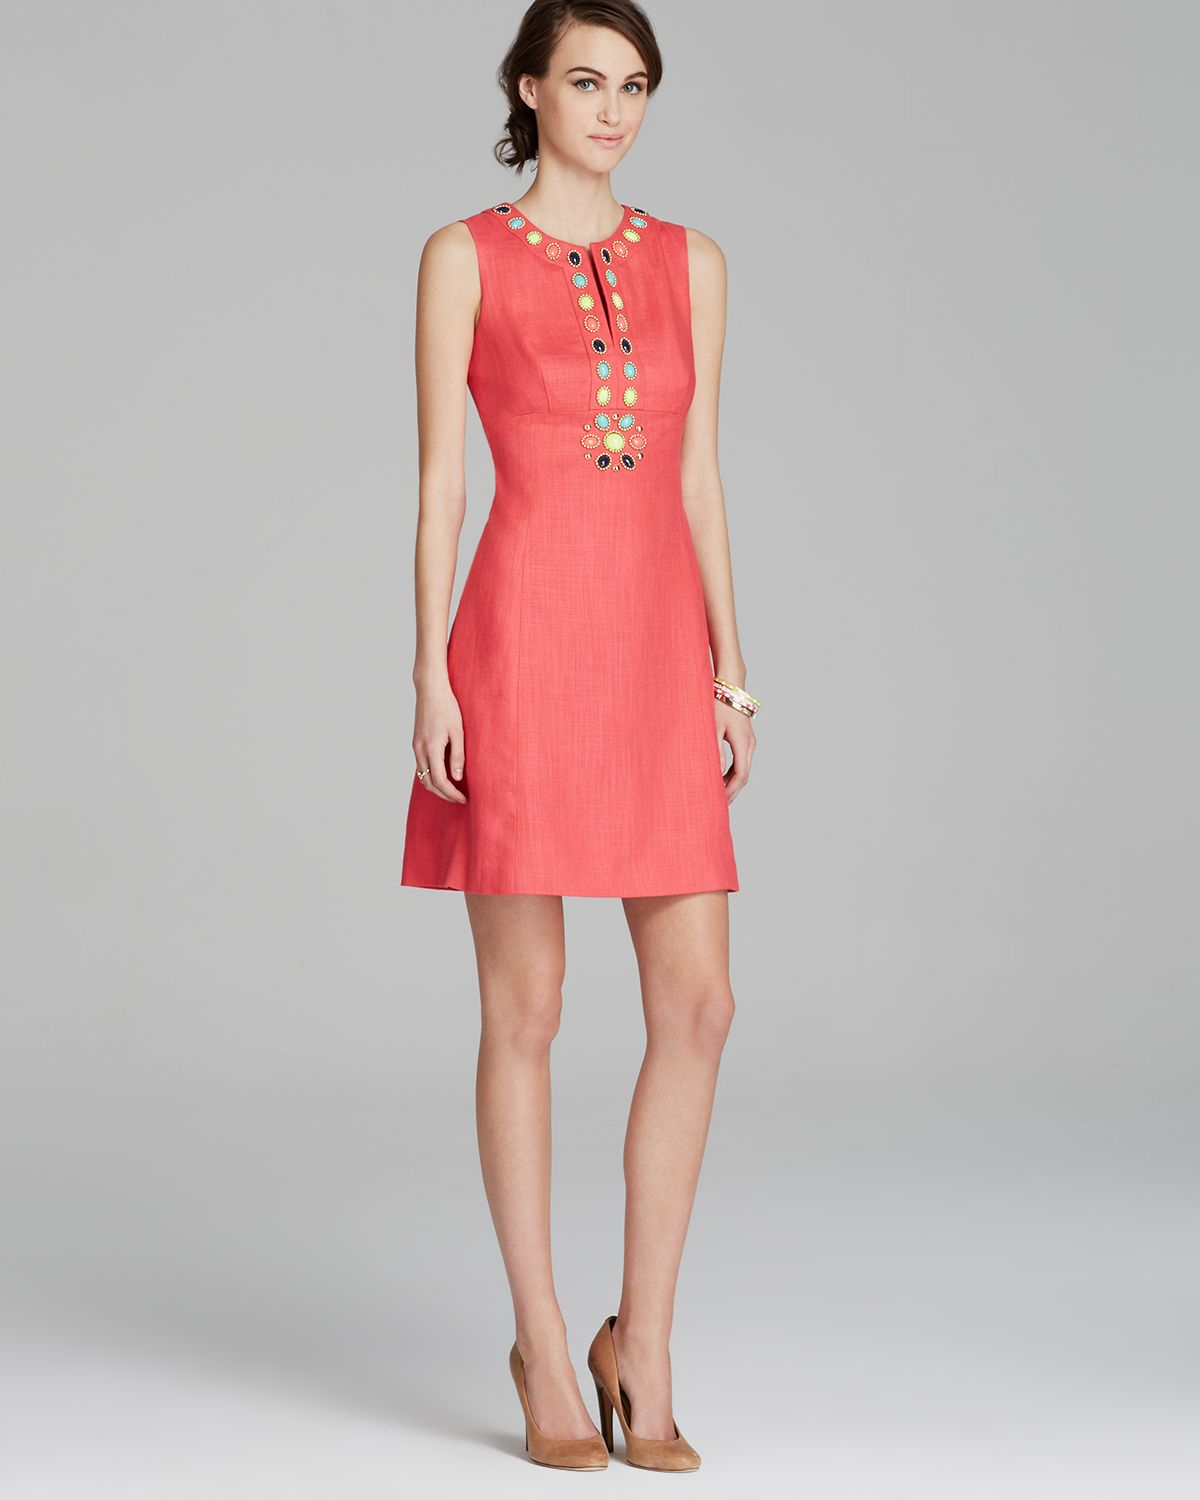 Lyst Kate Spade New York Edith Dress In Pink